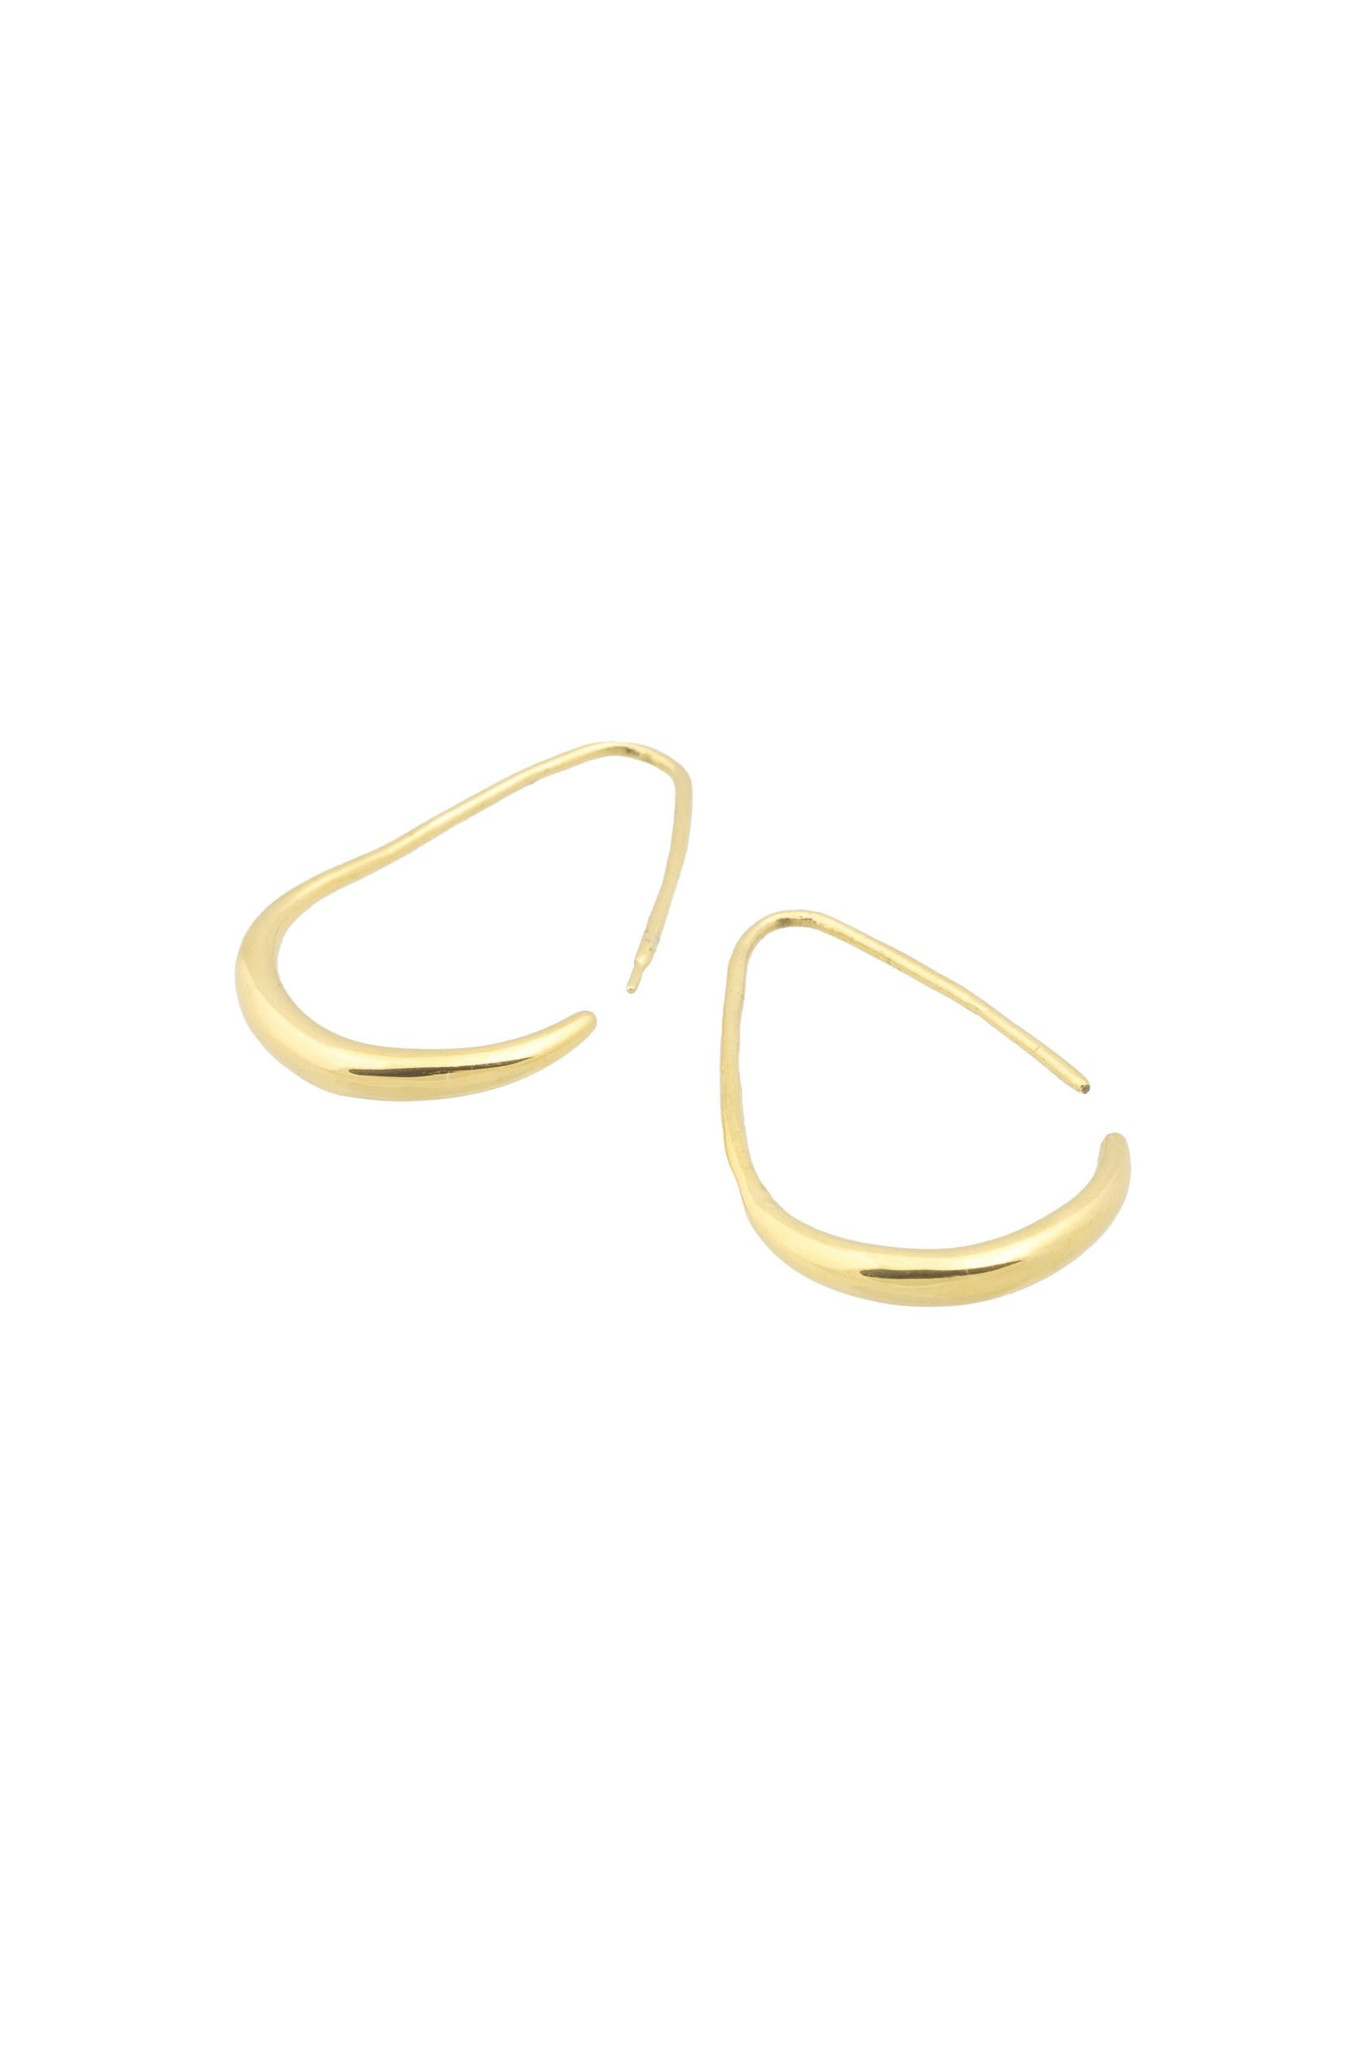 Teardrop Earrings - Gold-4